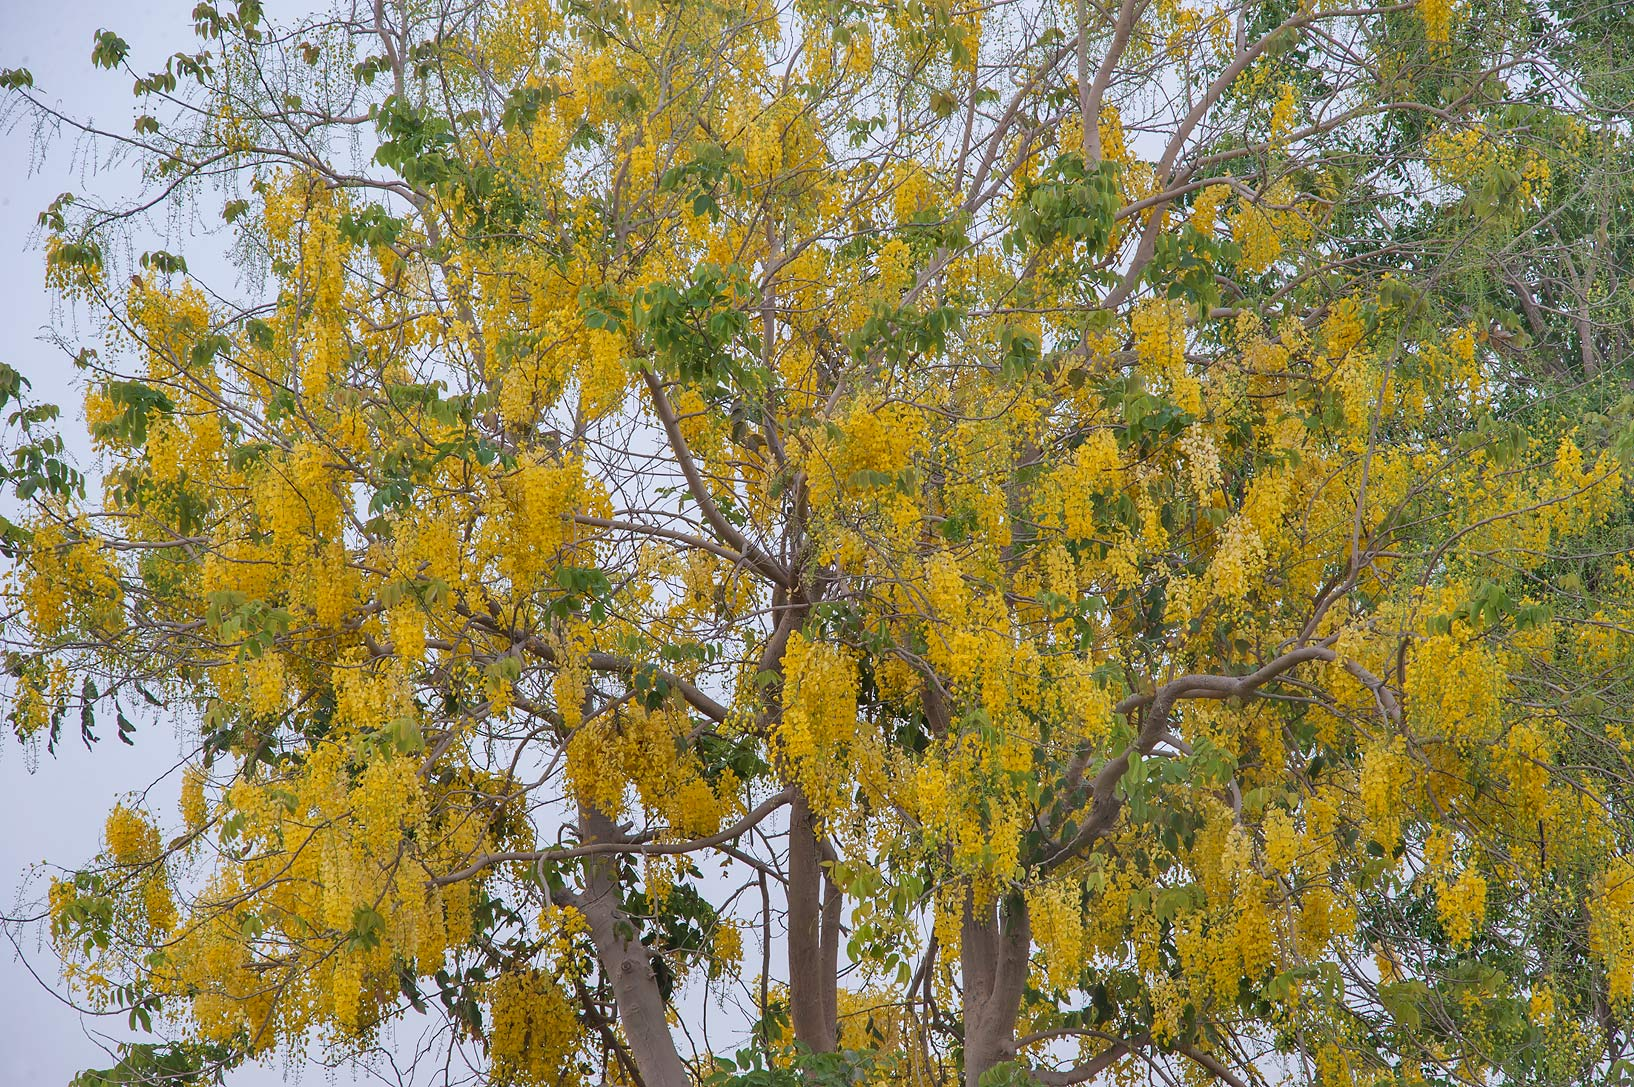 Golden shower tree (Cassia fistula) with yellow flowers in Aspire Park. Doha, Qatar